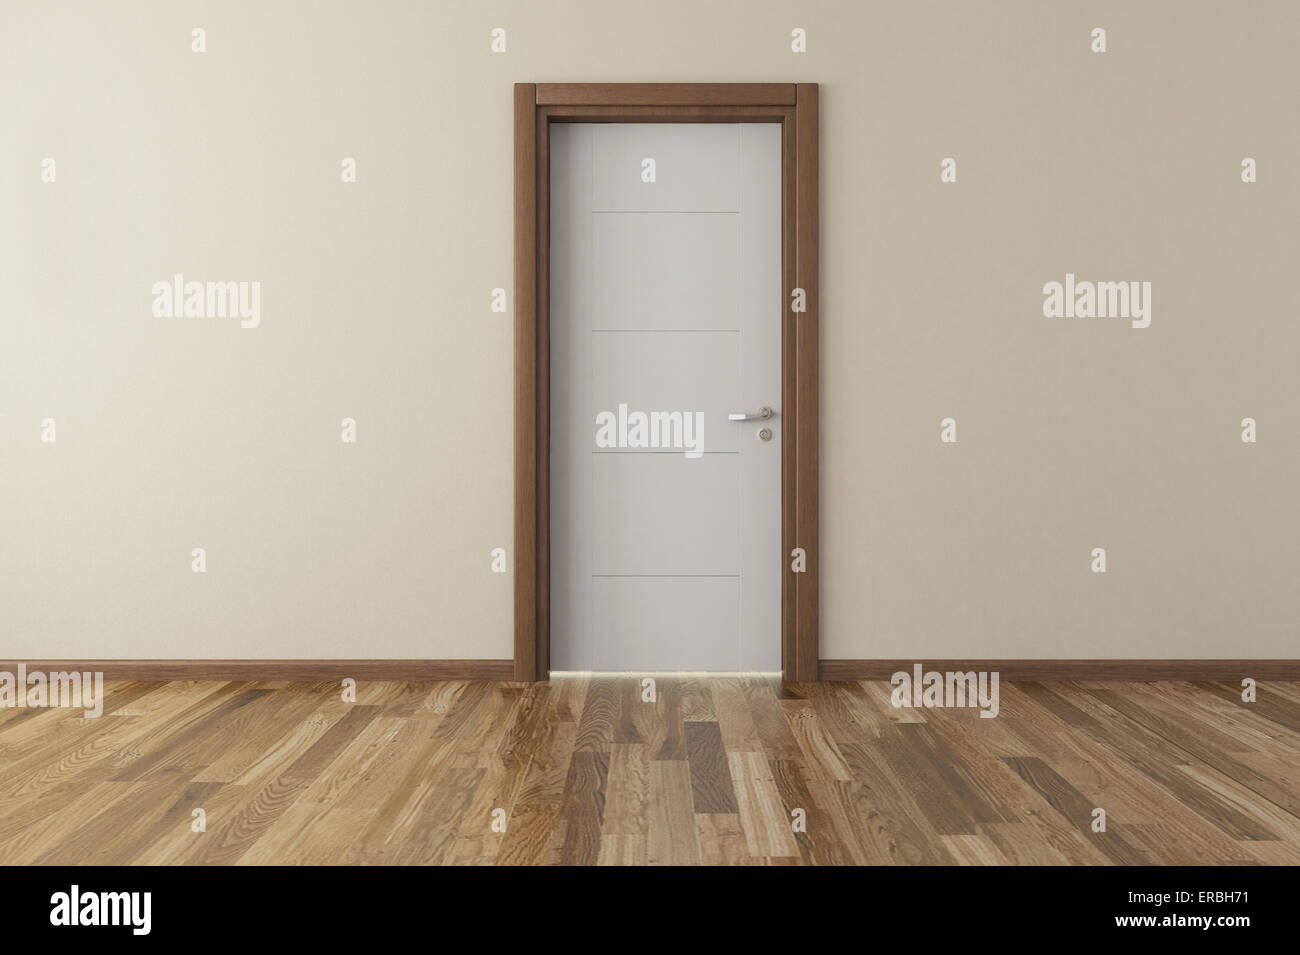 lacquer door with wall and parquet 3d model rendering & lacquer door with wall and parquet 3d model rendering Stock Photo ...